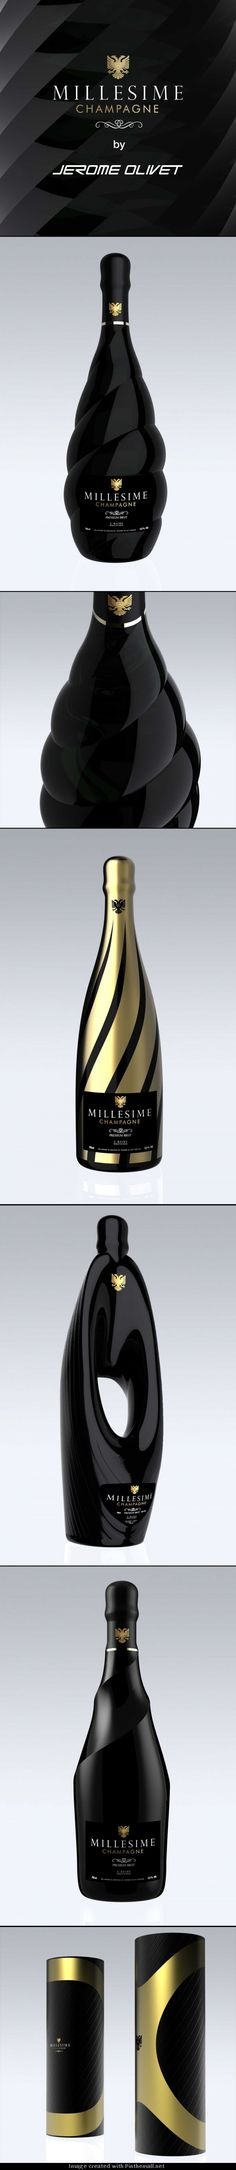 Millesime, exclusive champagne bottles with a futuristic design   designed by Jerome Olivet via Dieline PD